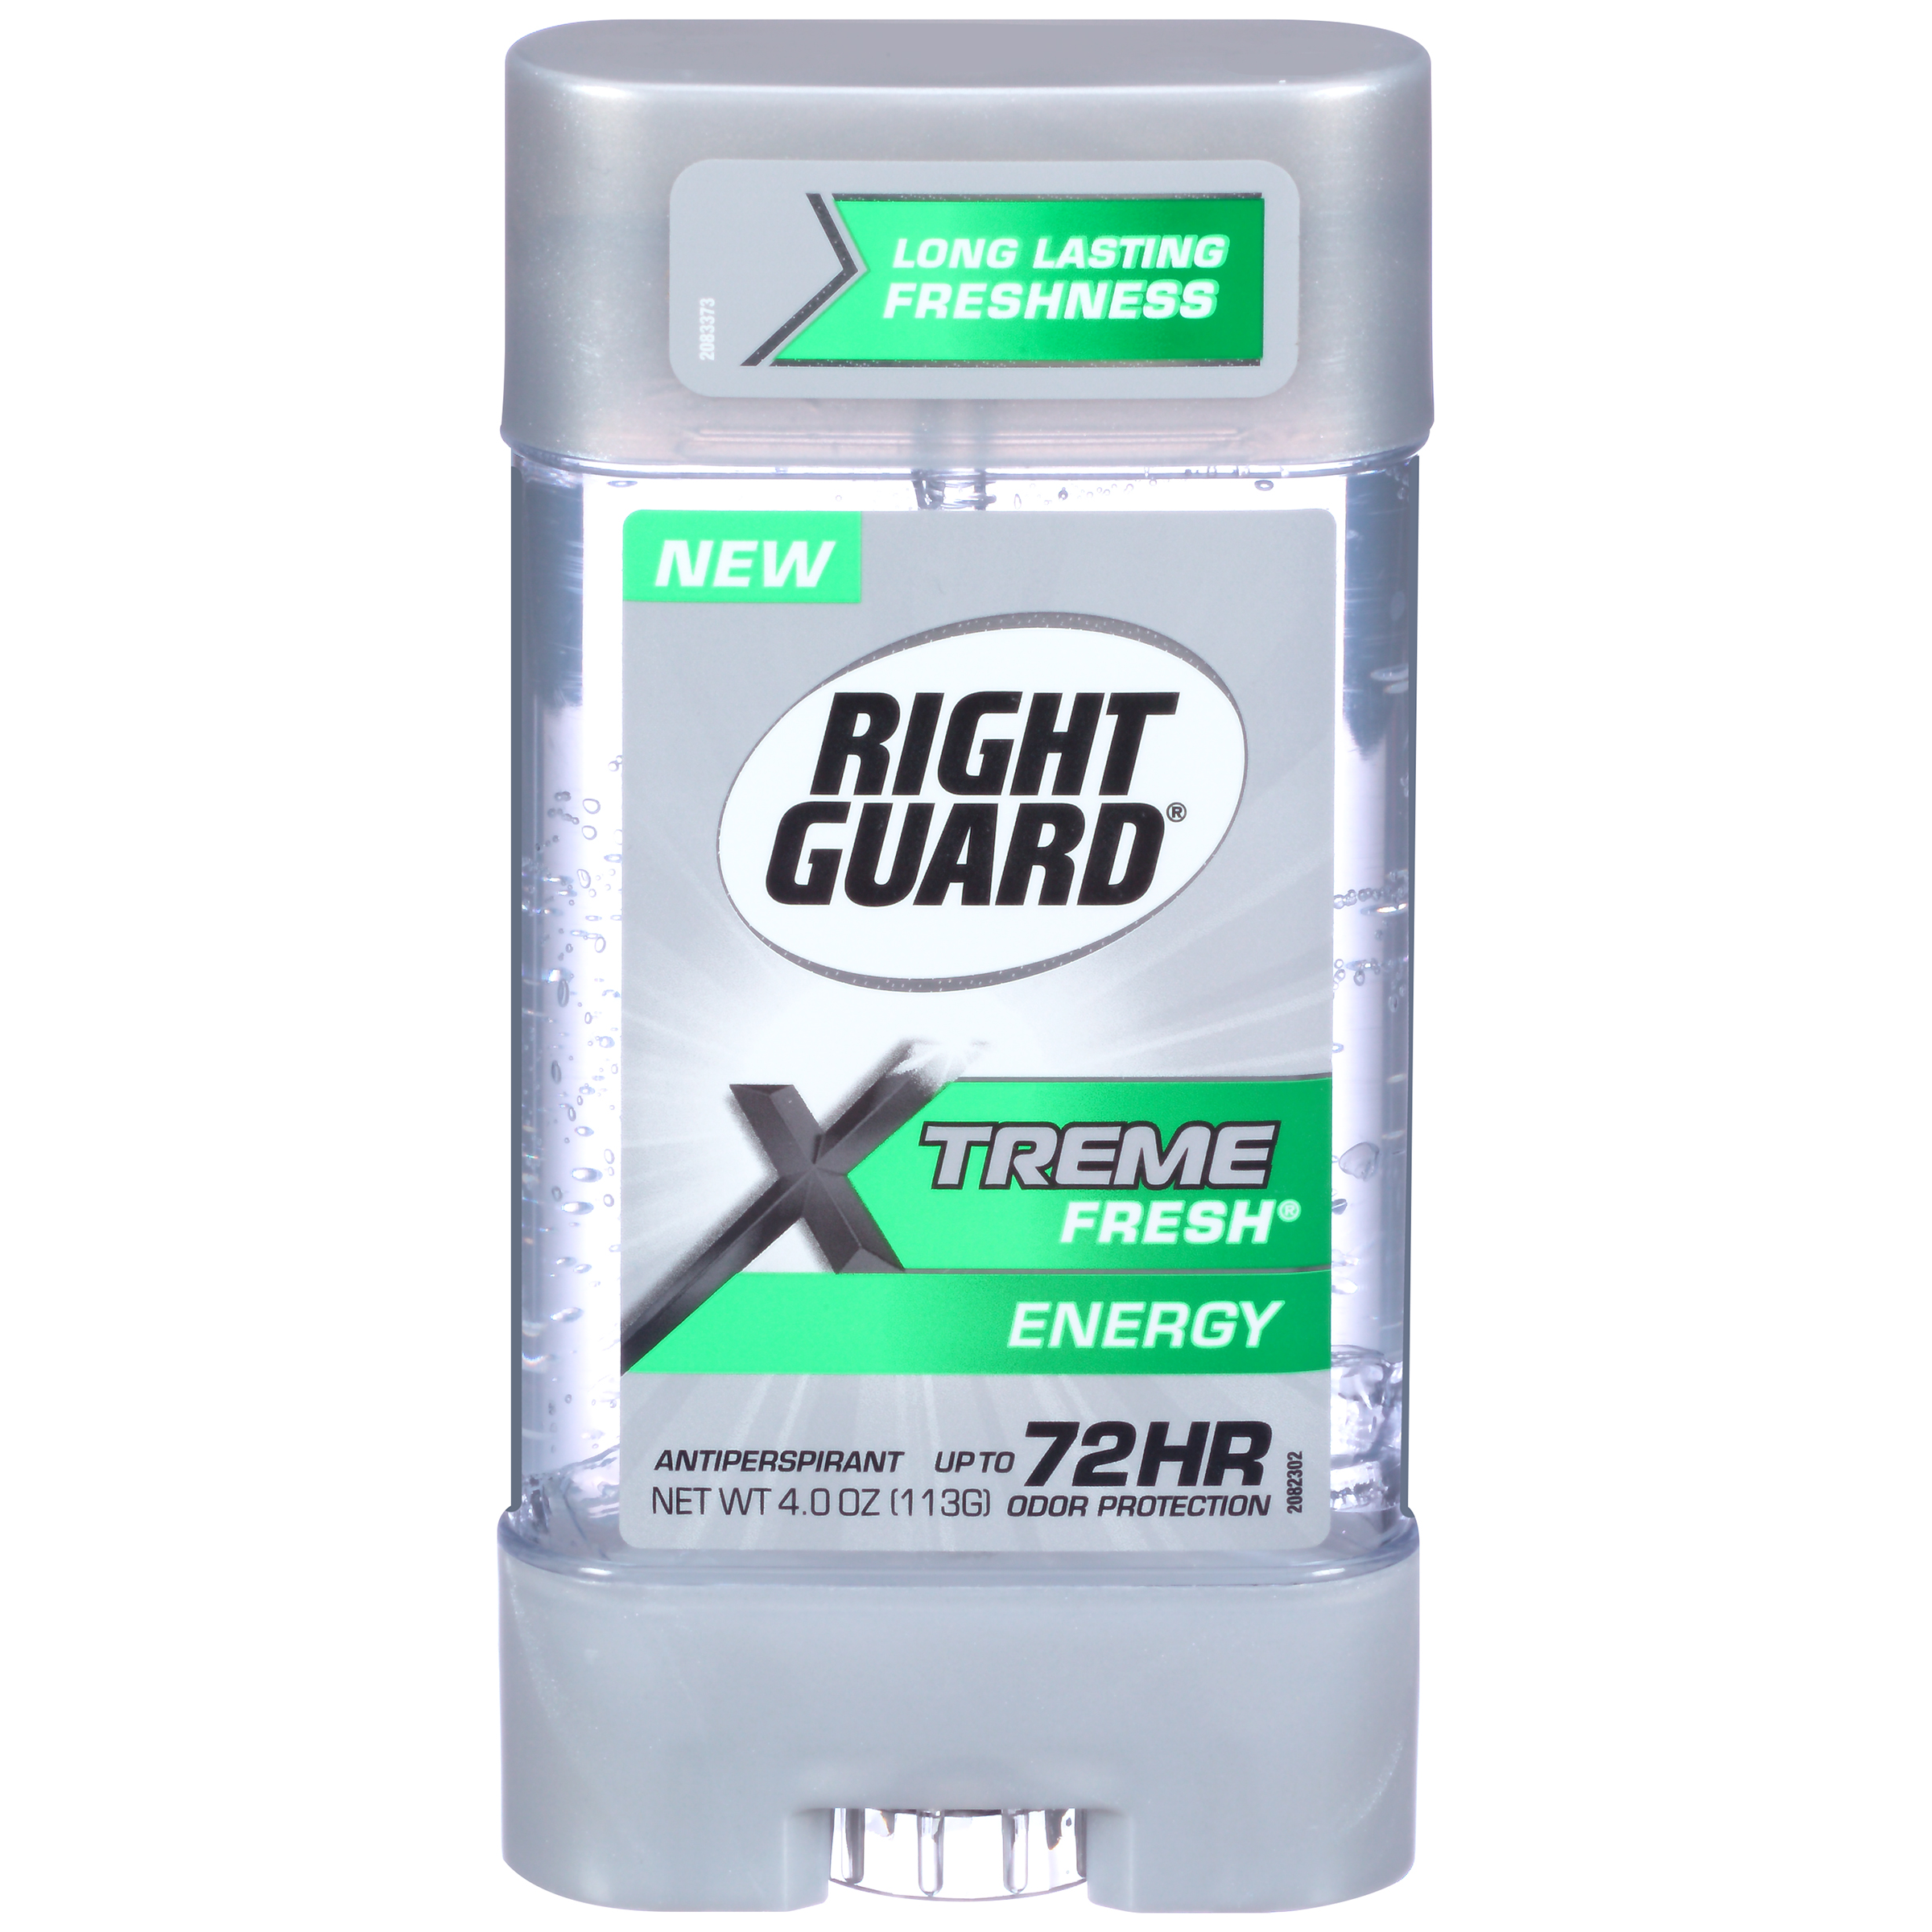 Right Guard Xtreme Fresh Antiperspirant Deodorant Gel, Energy, 4 Ounce